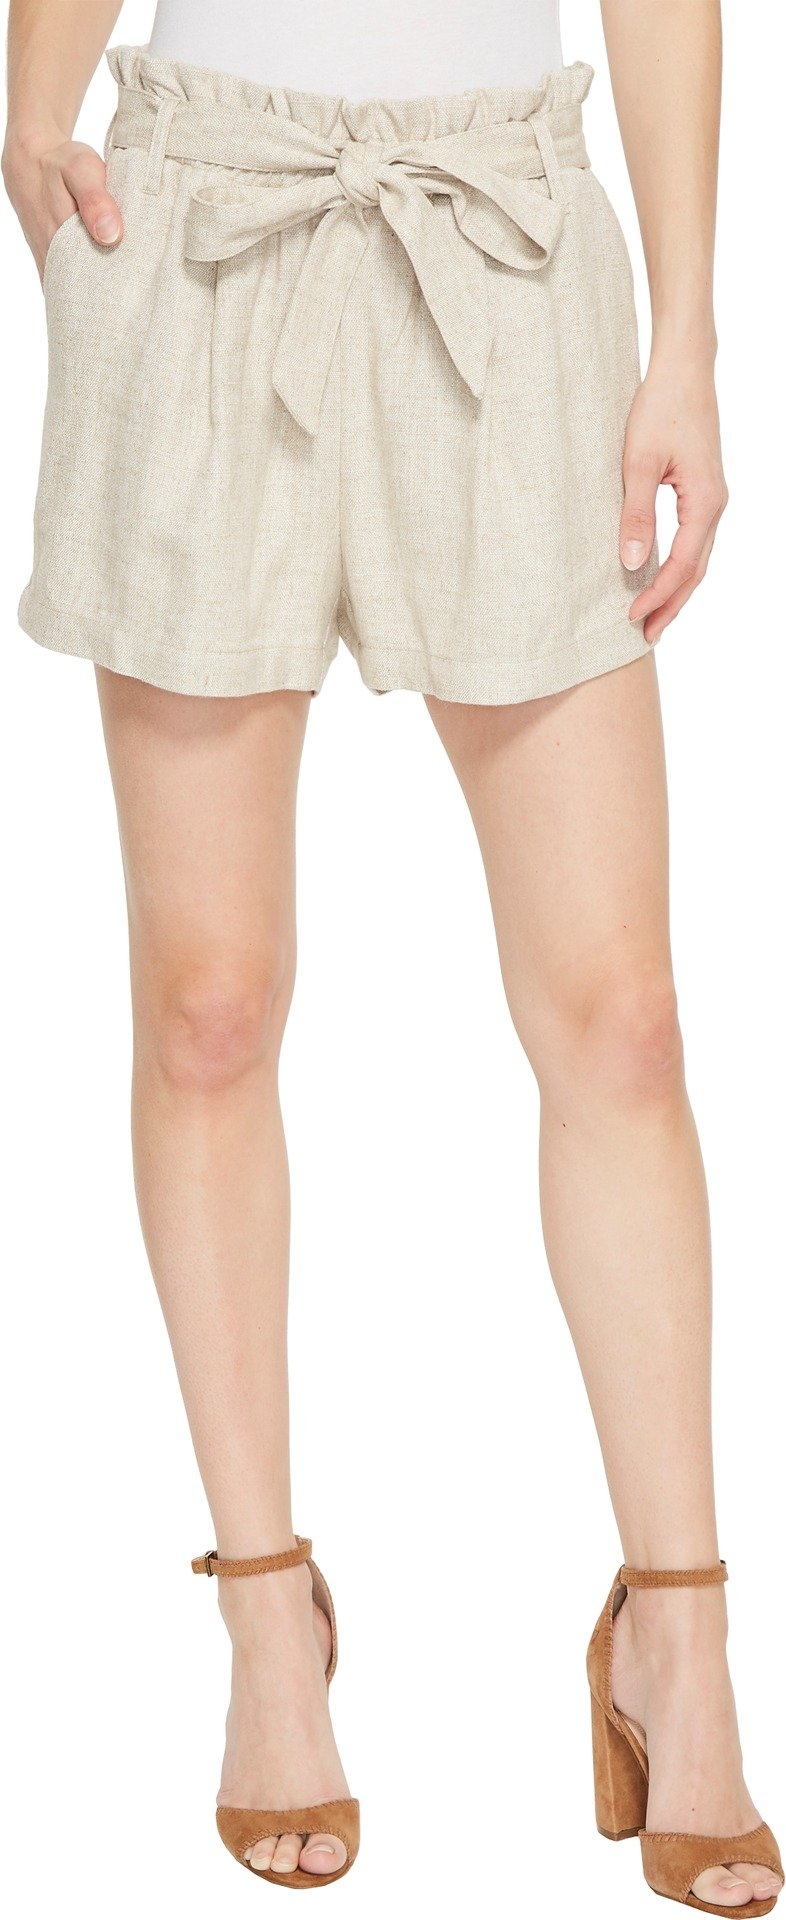 Karen Kane Women's Paperbag Waist Shorts Tan X-Large